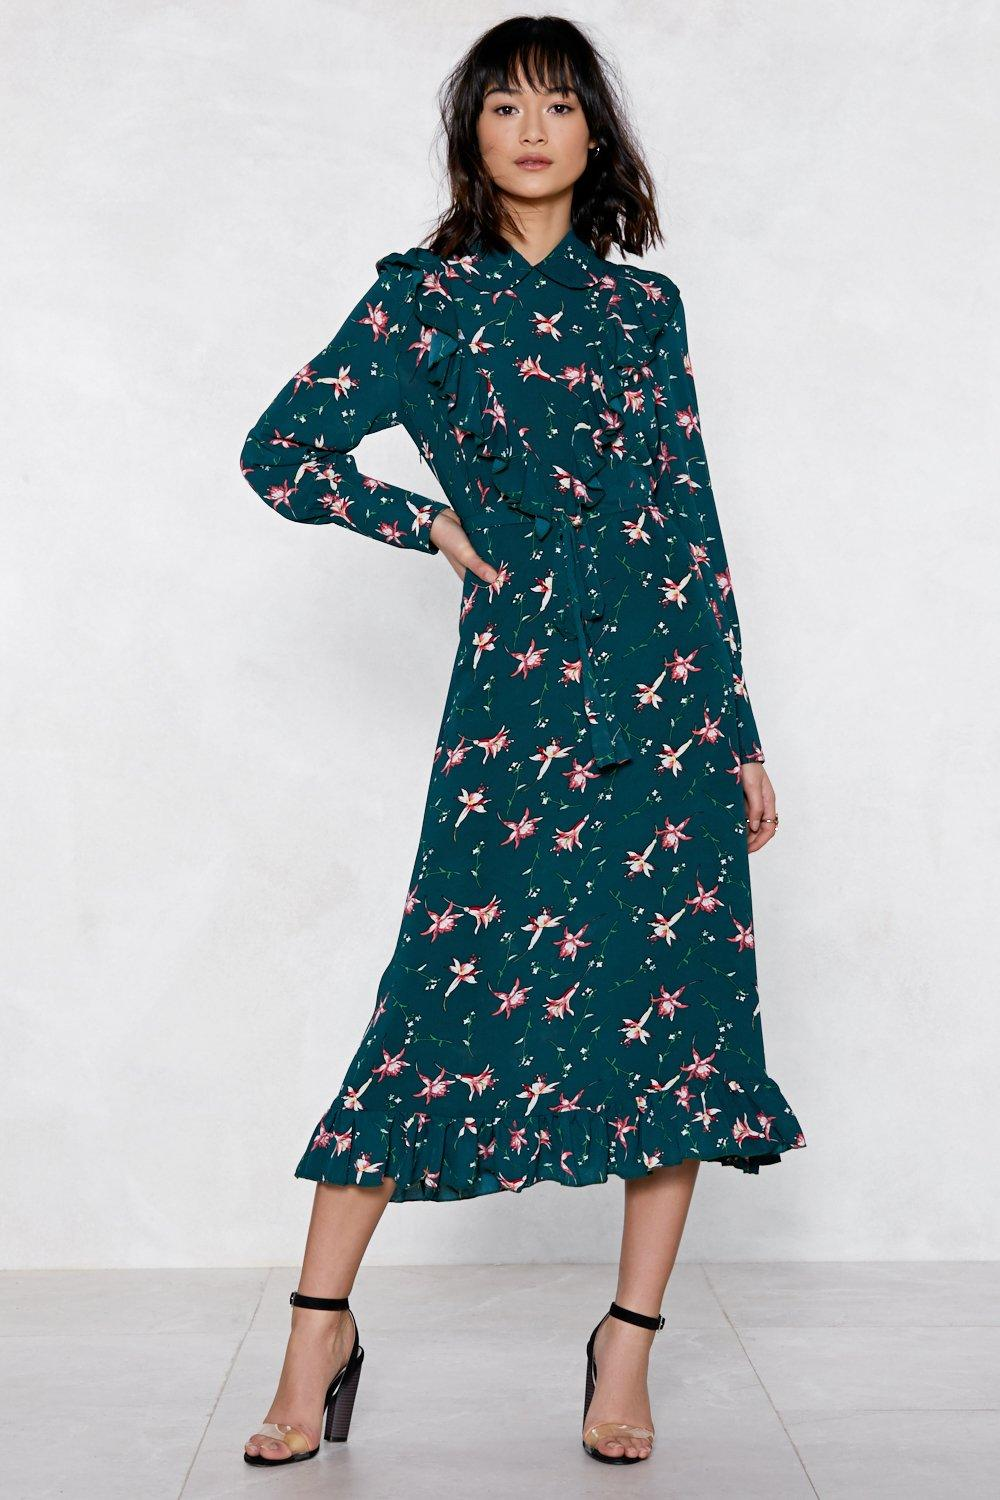 fdb8f4ae54c65 You'll Grow a Long Way Floral Dress | Shop Clothes at Nasty Gal!